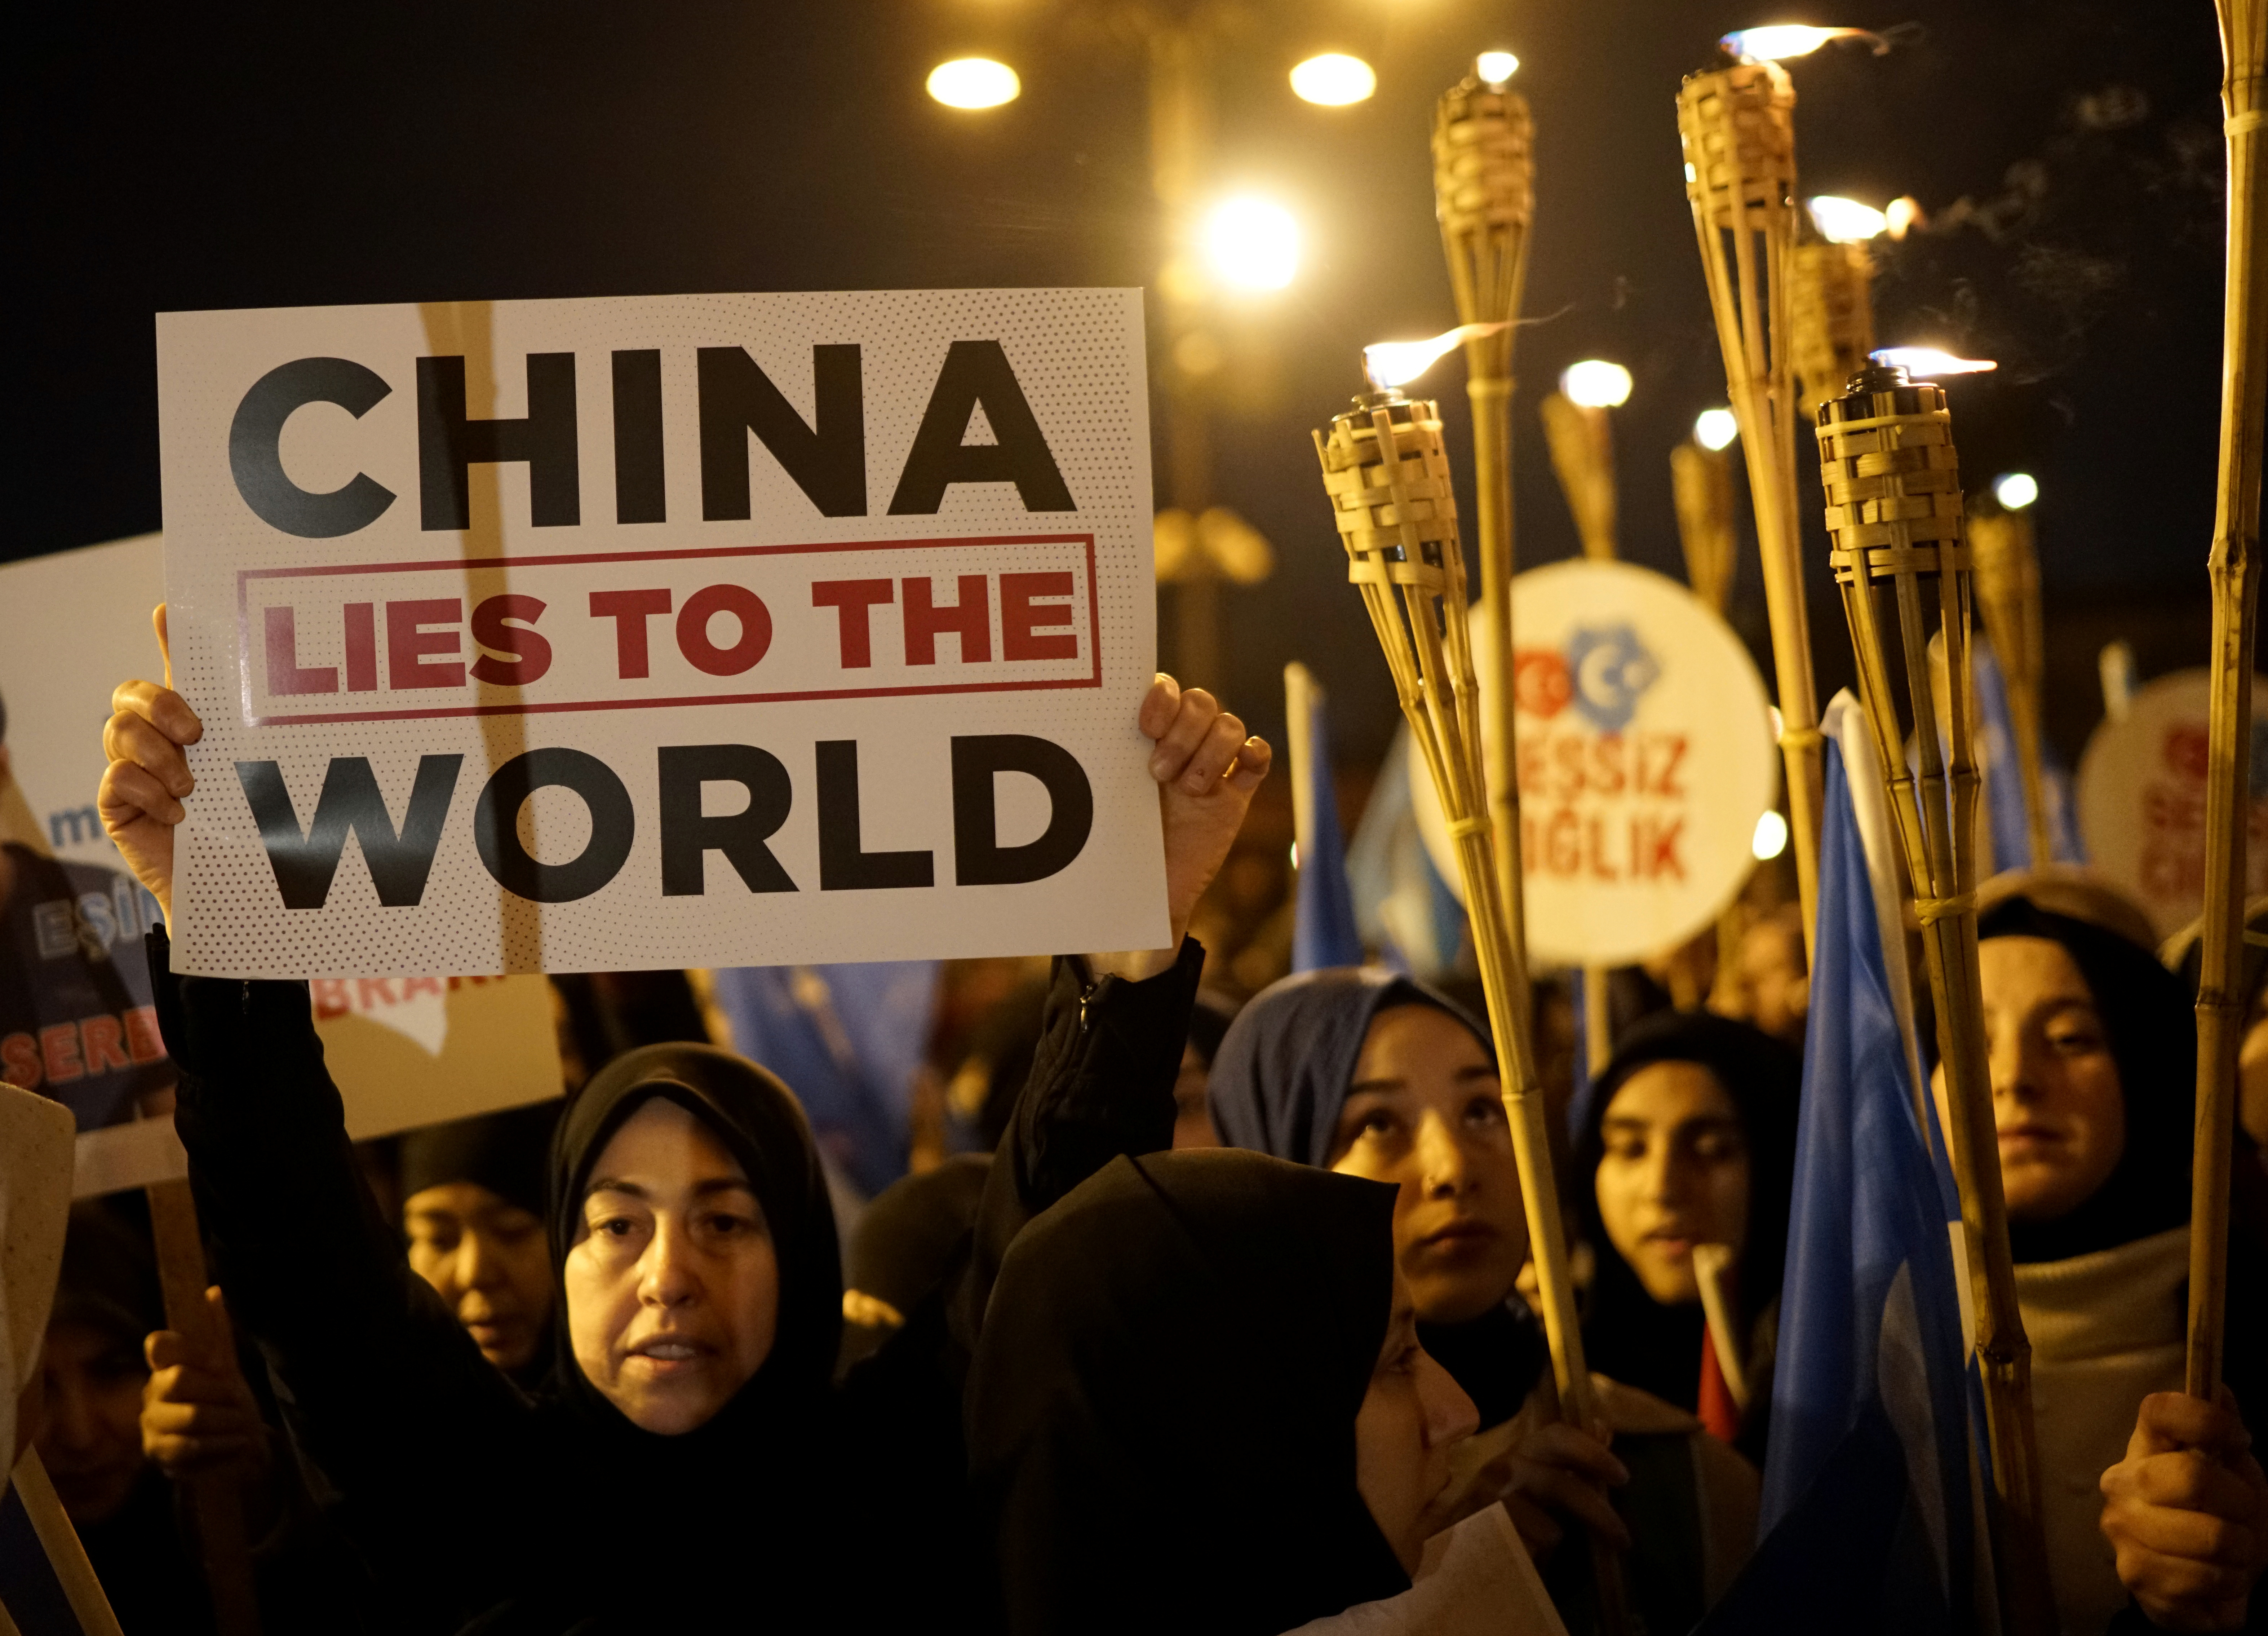 Protesters march in support of China's Uighurs and in solidarity with Arsenal midfielder Mesut Ozil after the furore caused by his criticism of China's policies toward the Muslim minority in Istanbul, Turkey, December 20, 2019. REUTERS/Umit Bektas